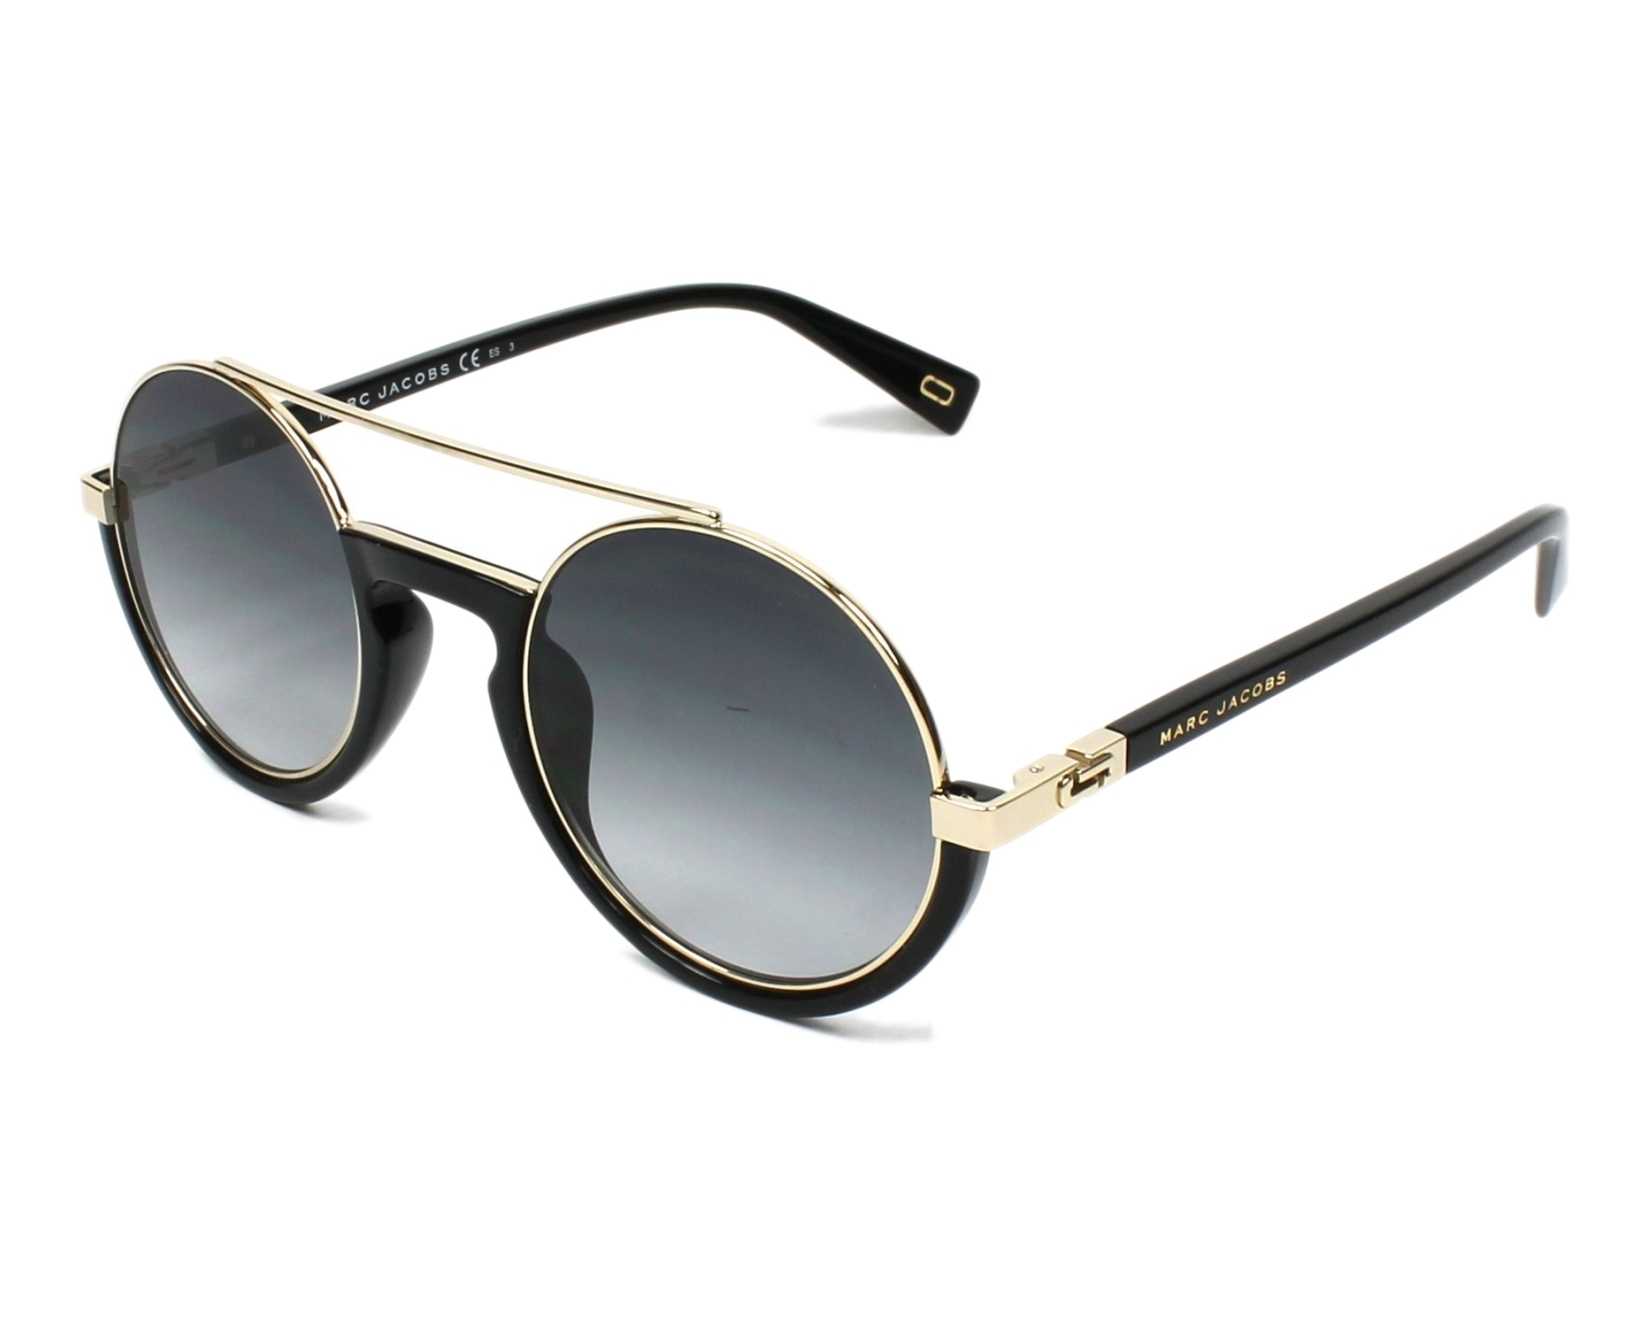 Sunglasses Marc Jacobs MARC-217-S 2M2/9O 50-25 Black Gold